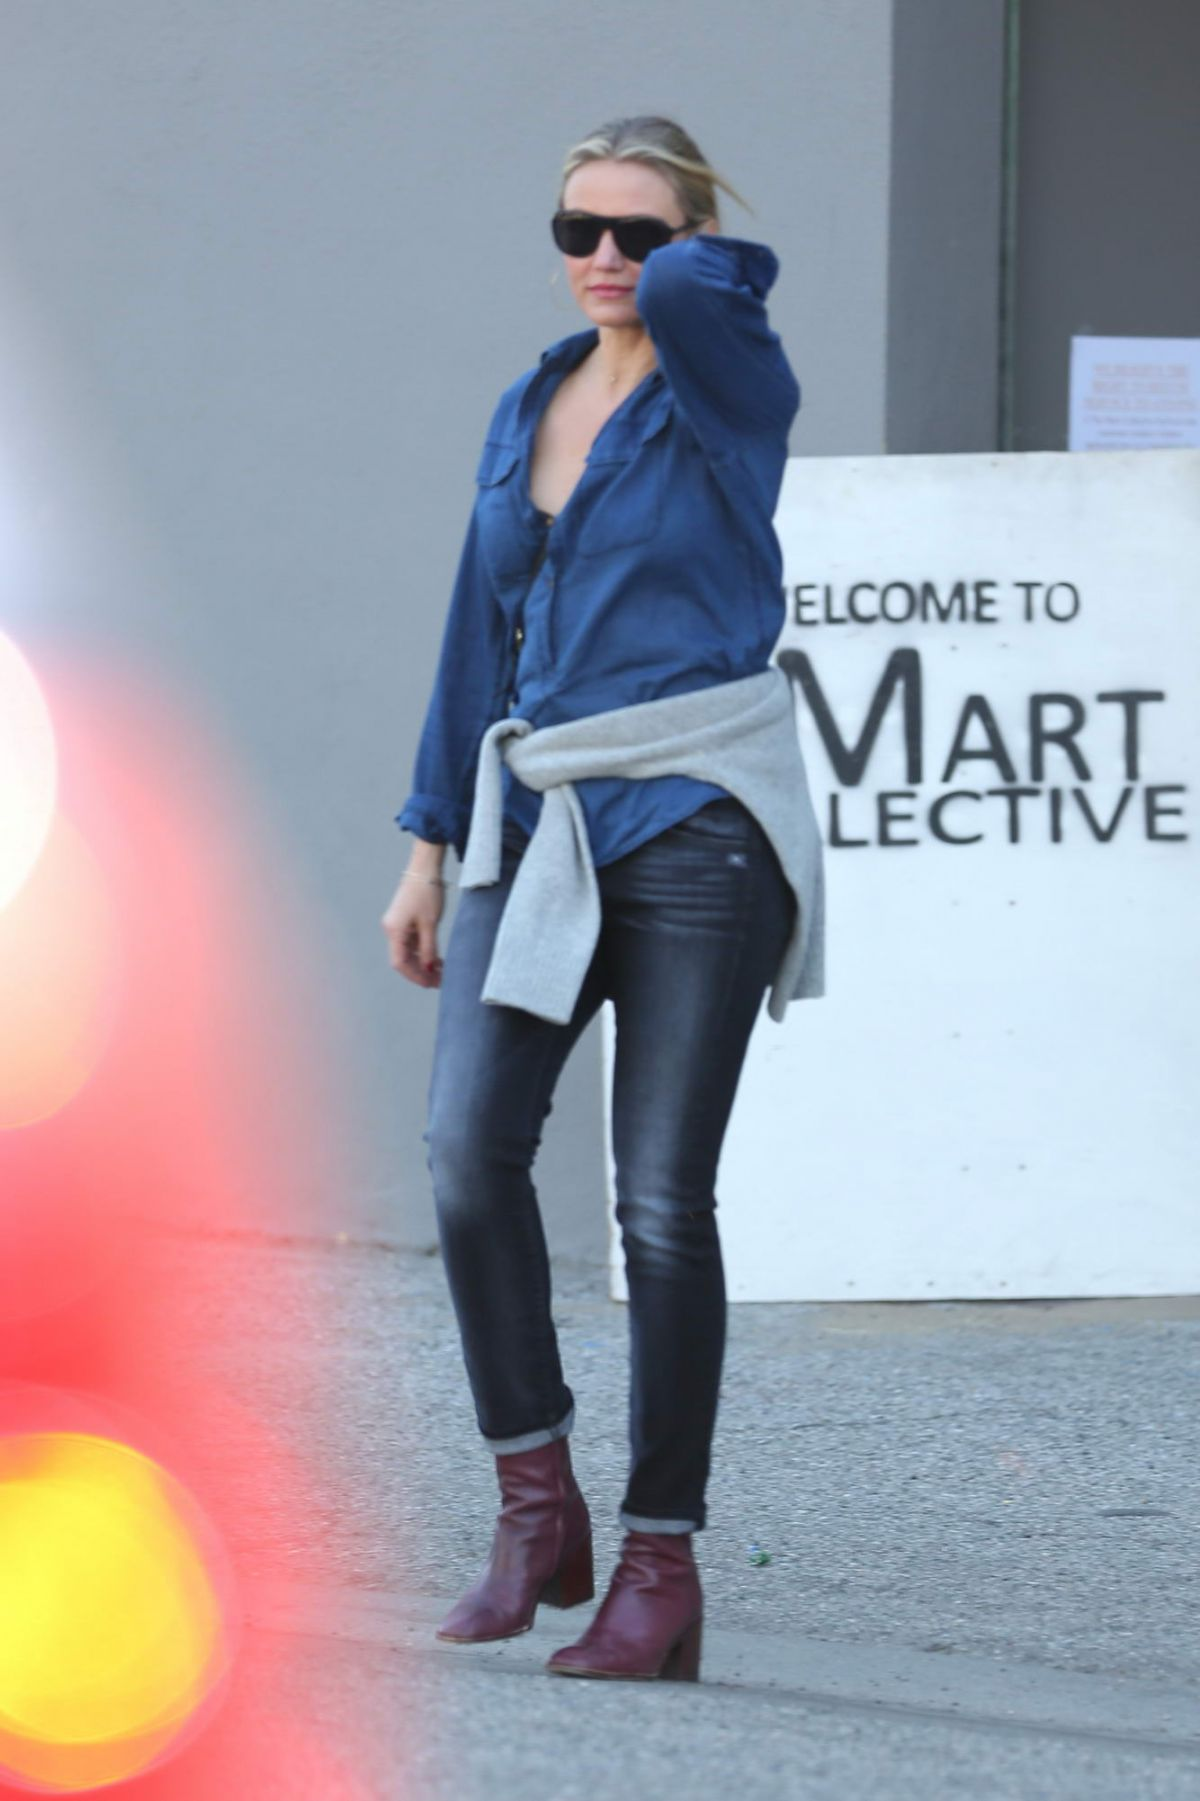 Cameron diaz out shopping at mart collective in venice 01 28 2016